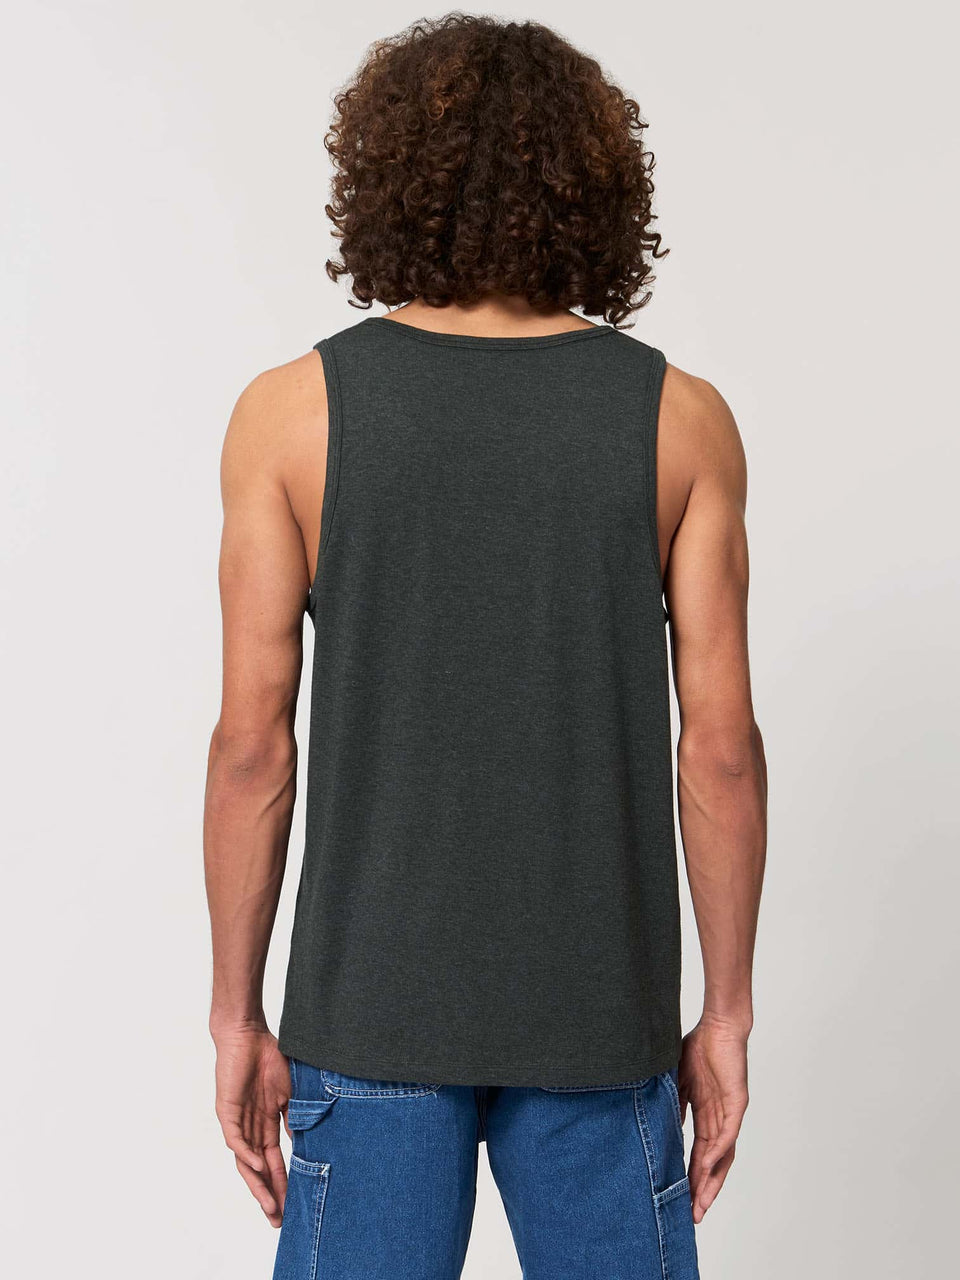 Butterfly Morph Made To Order Men Tank Top - Dark Heather